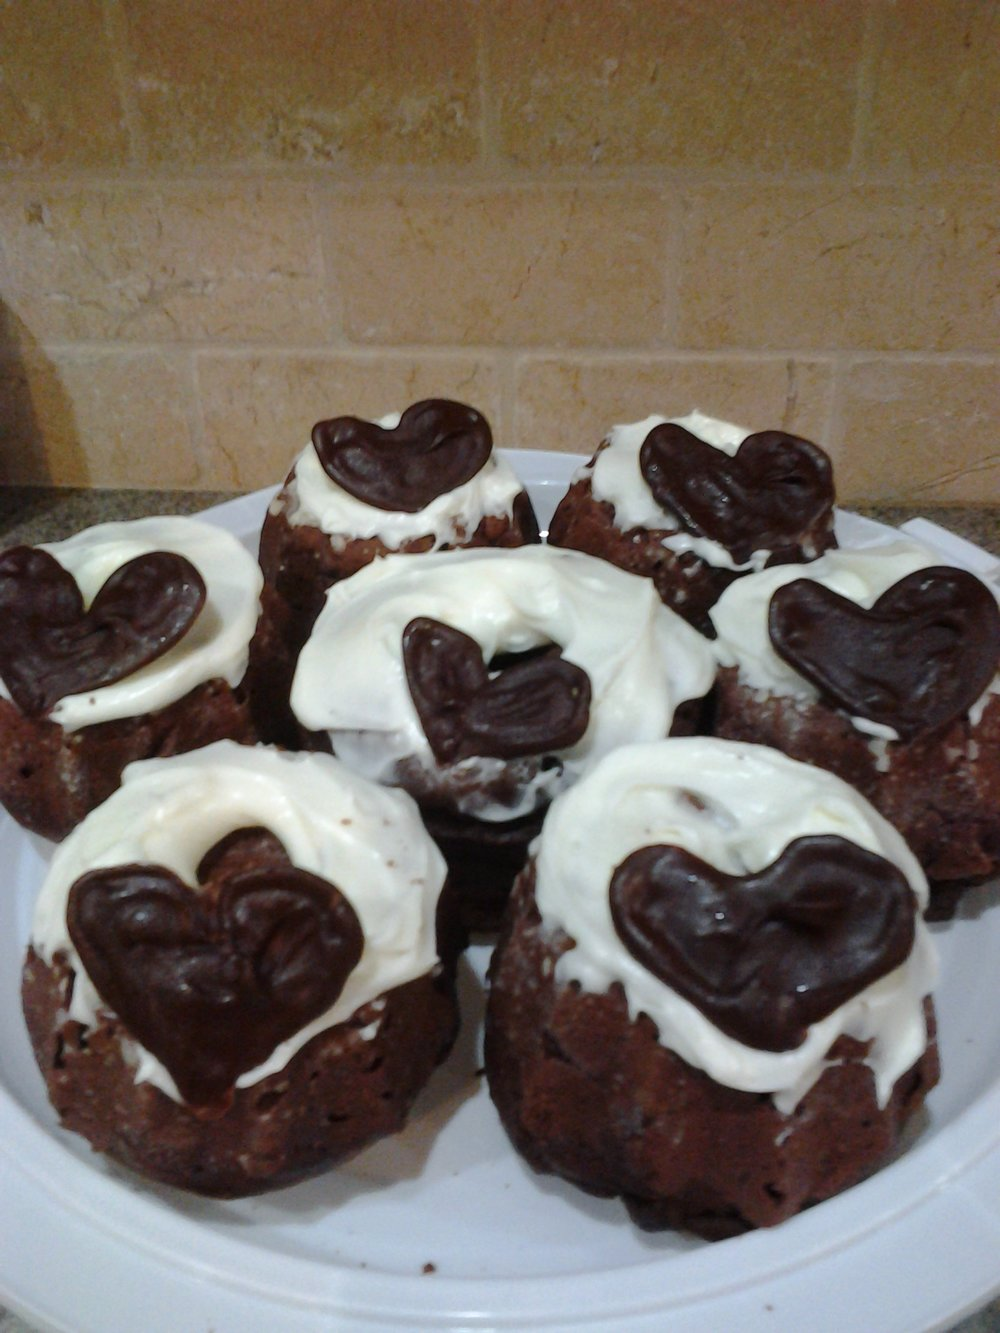 CHOCOLATE CAKE WITH WHITE FROSTING AND CHOCOLATE HEART